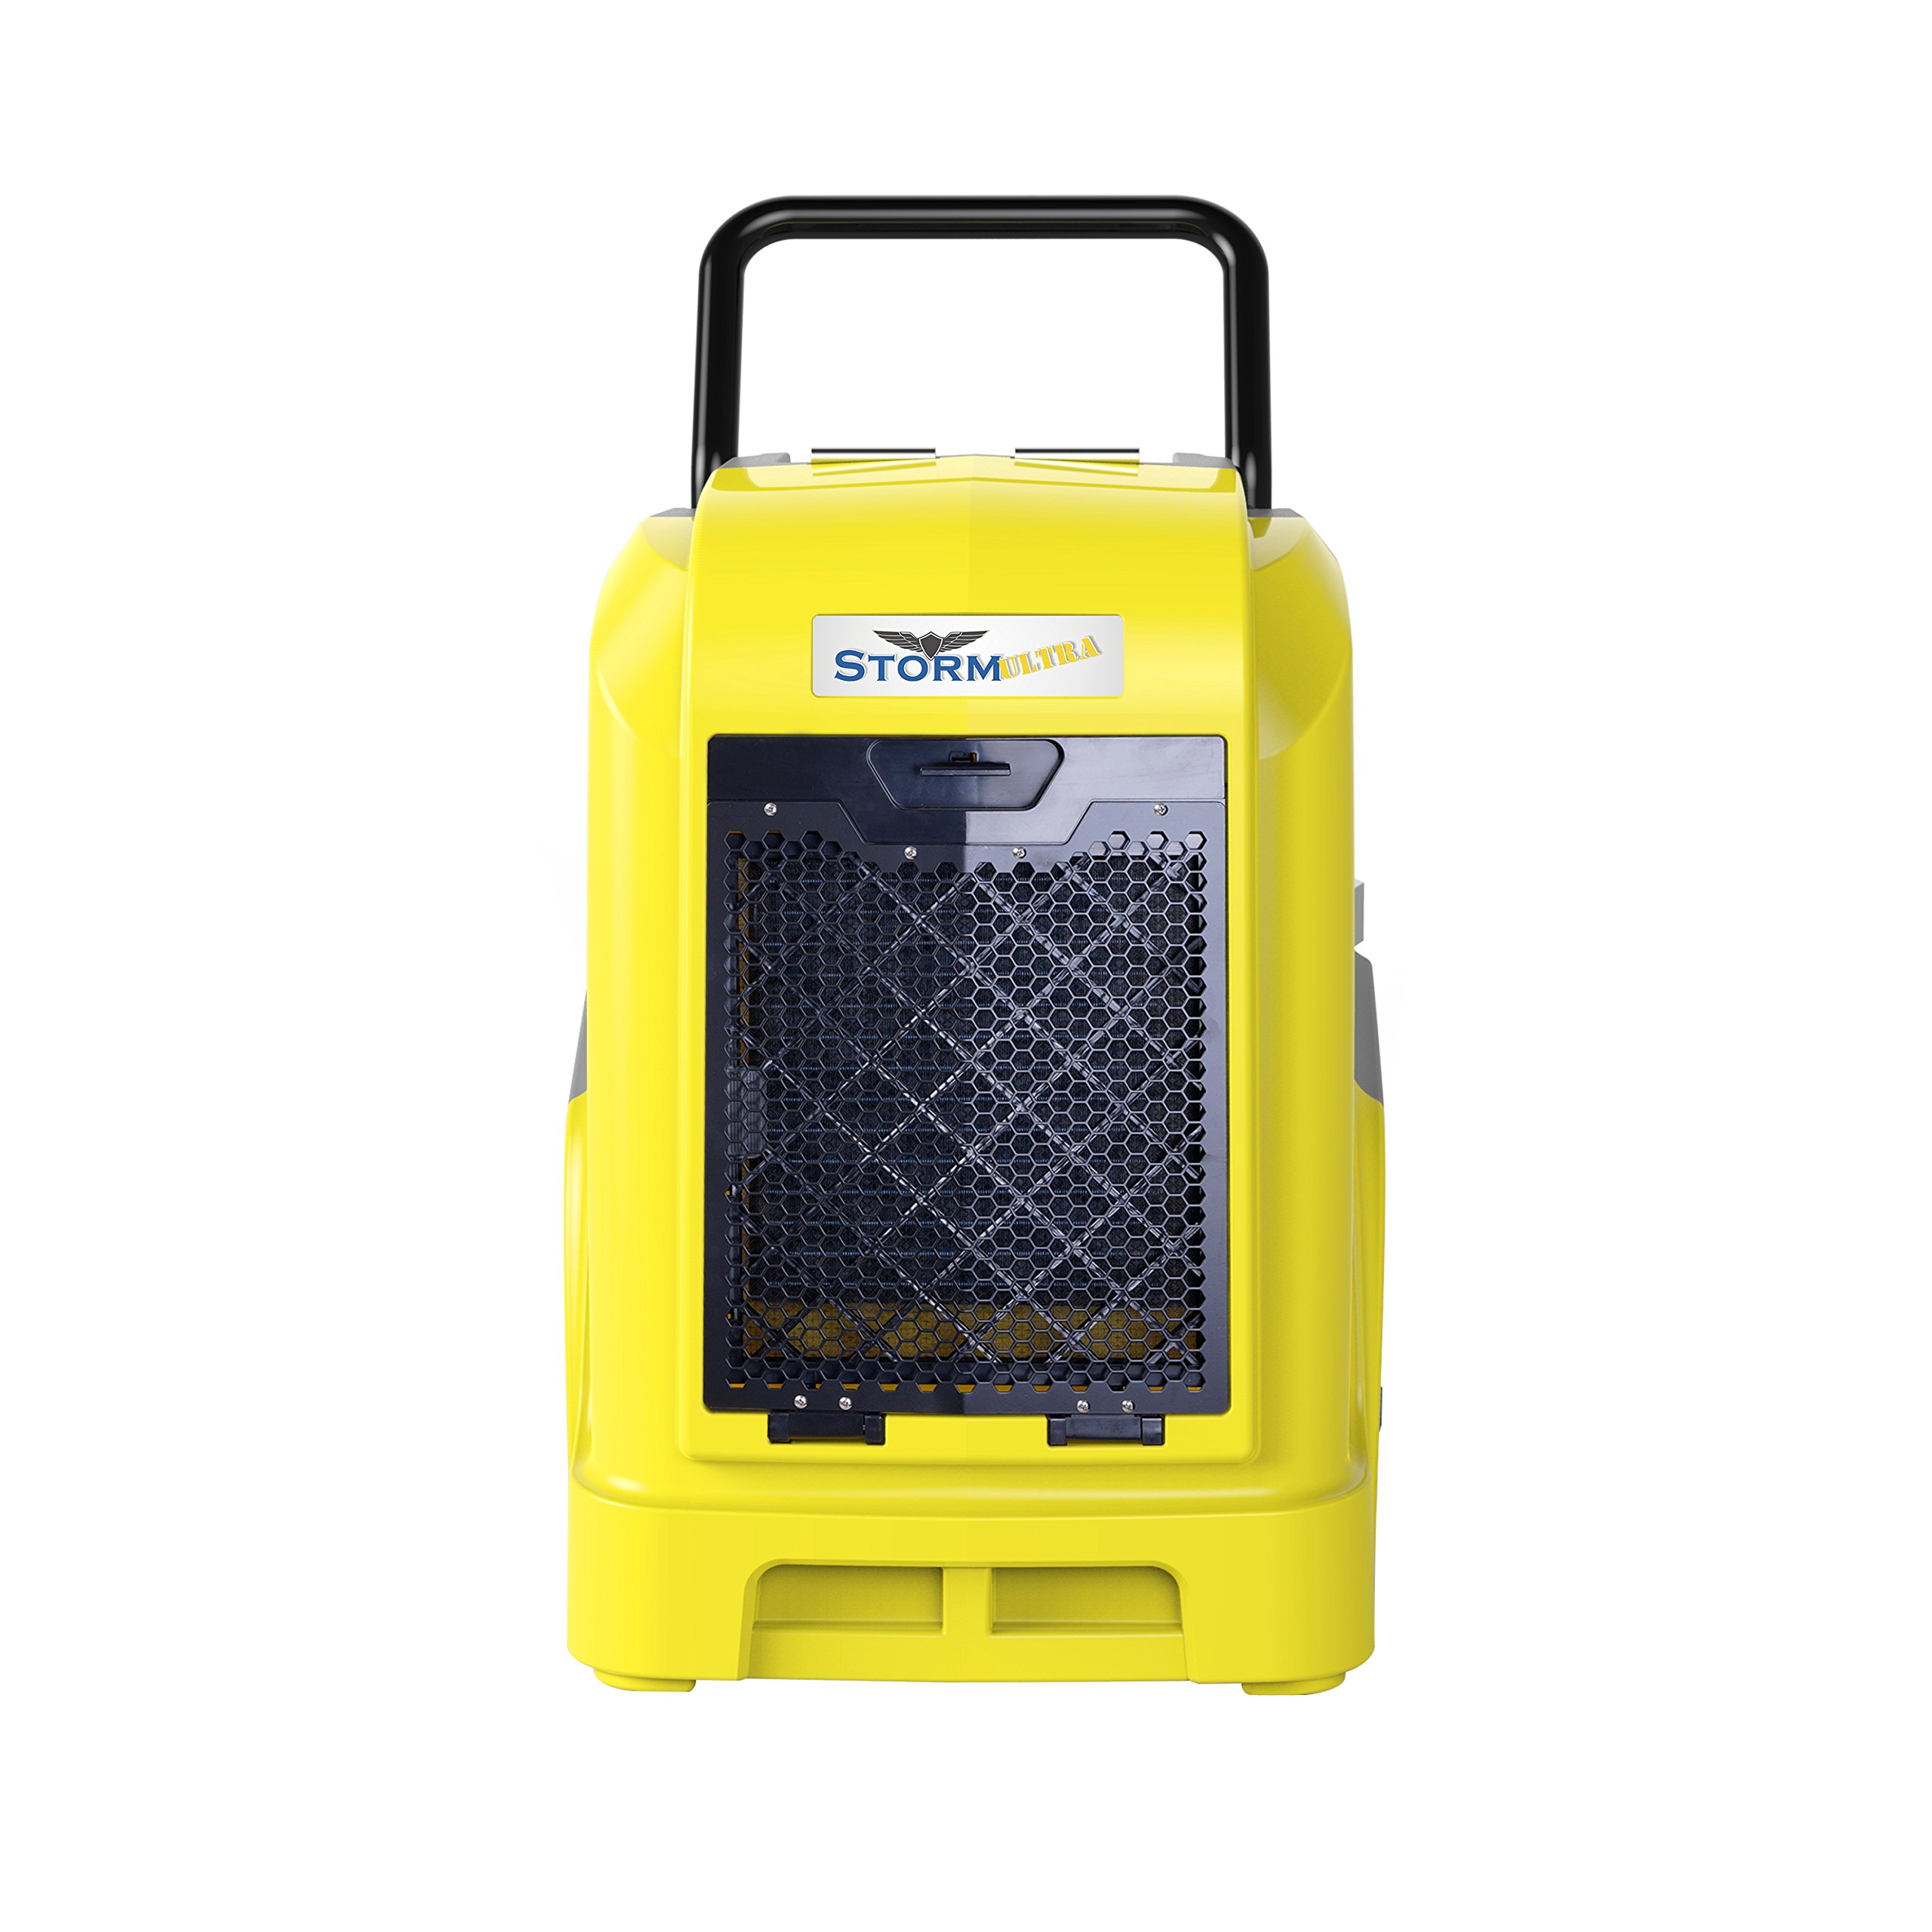 Commercial Portable Dehumidifiers for Water Damage Restoration Carpet Cleaning and Building Dryer 90 Pint